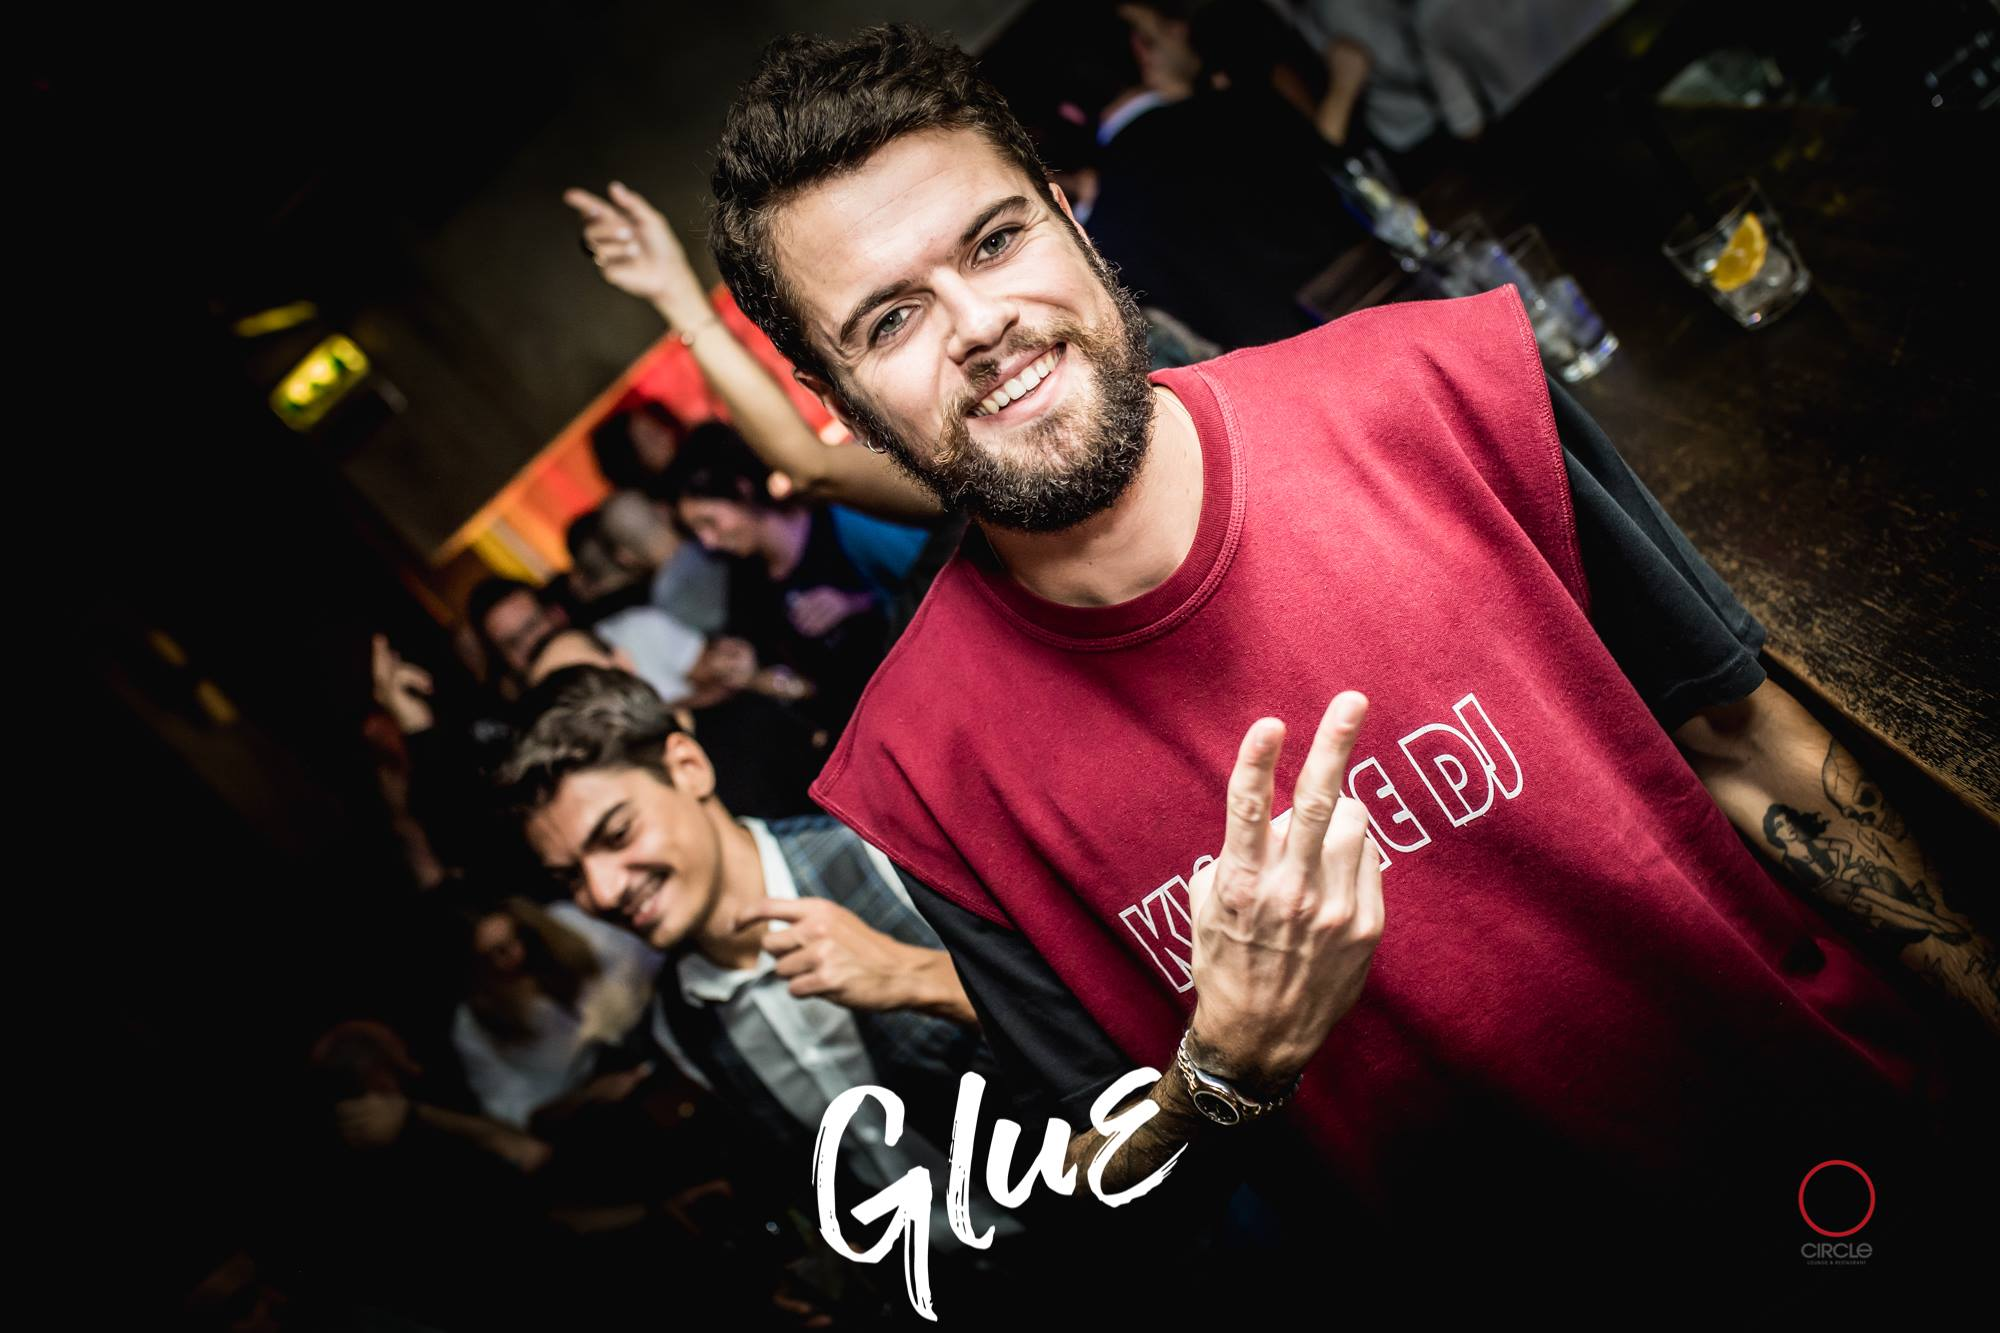 GLUE | Music Culture friday circle milano